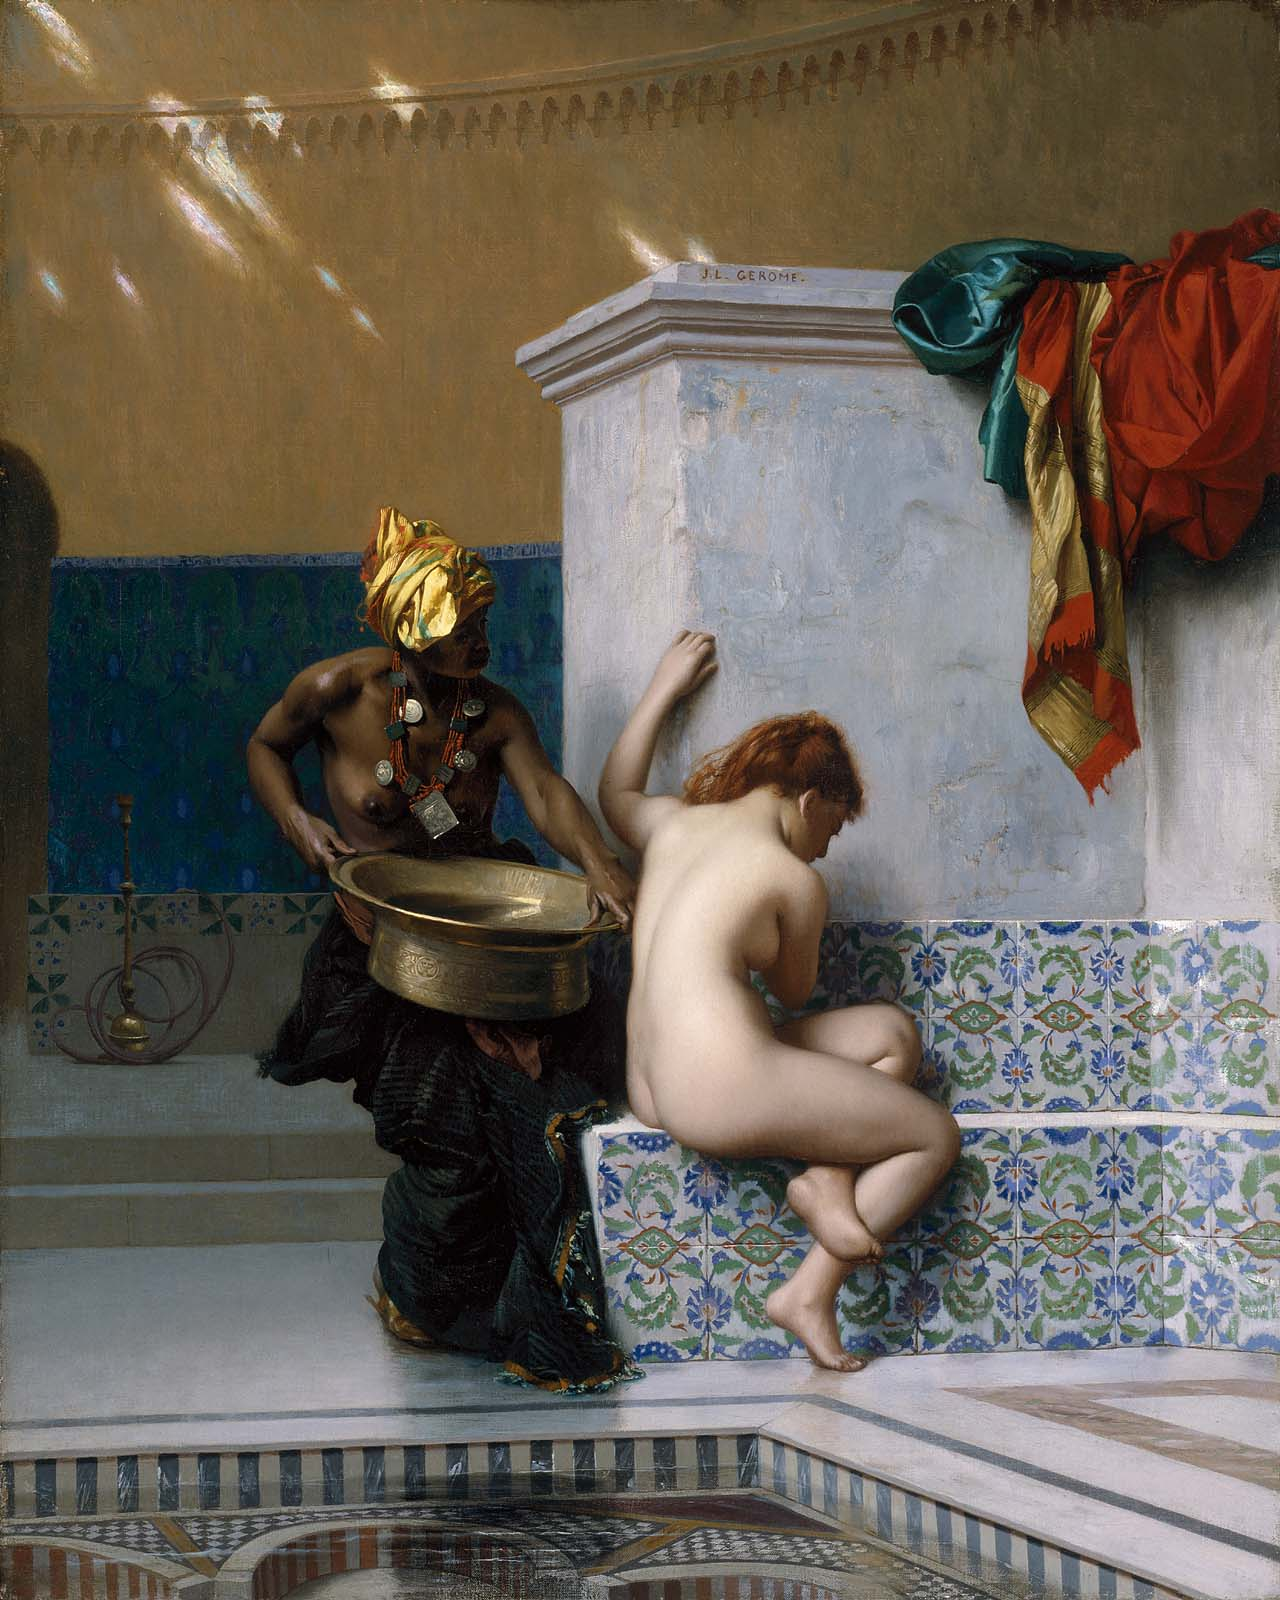 Jean-Léon Gérôme: Moorish bath, 1870. Olaj, vászon, 50 x 40 cm. Museum of Fine Arts, Boston.